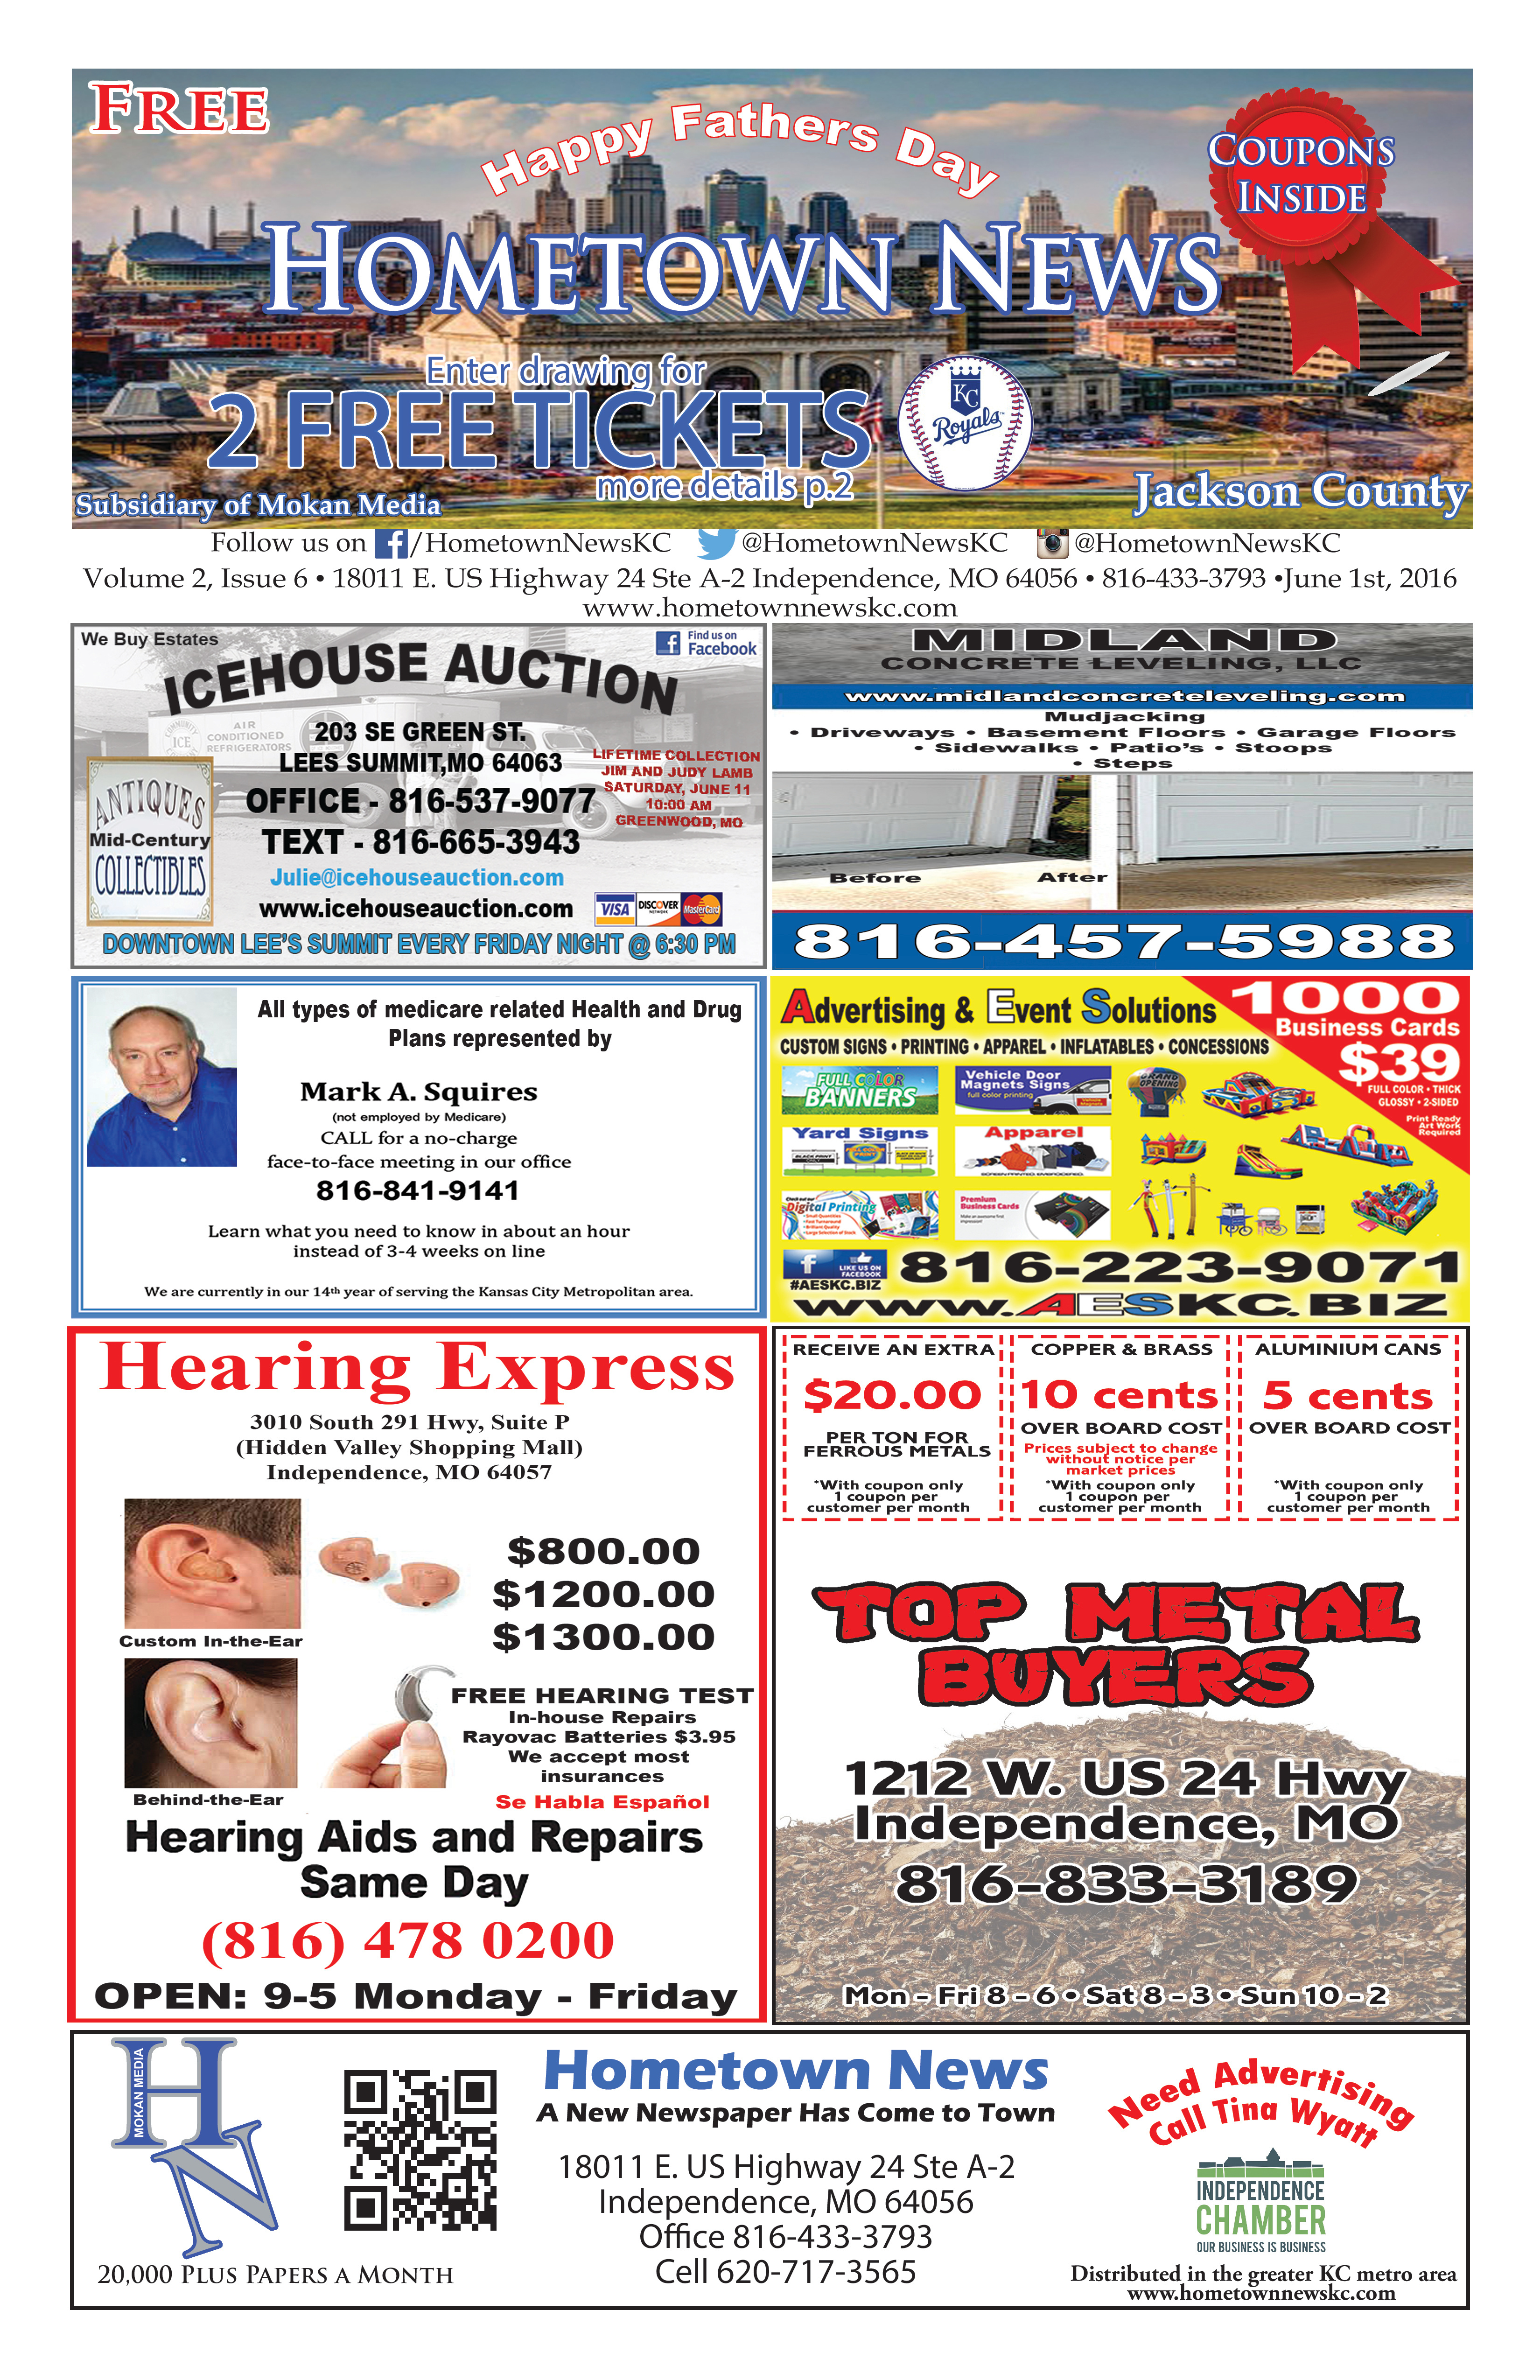 HTN11 - 1 - Front Page